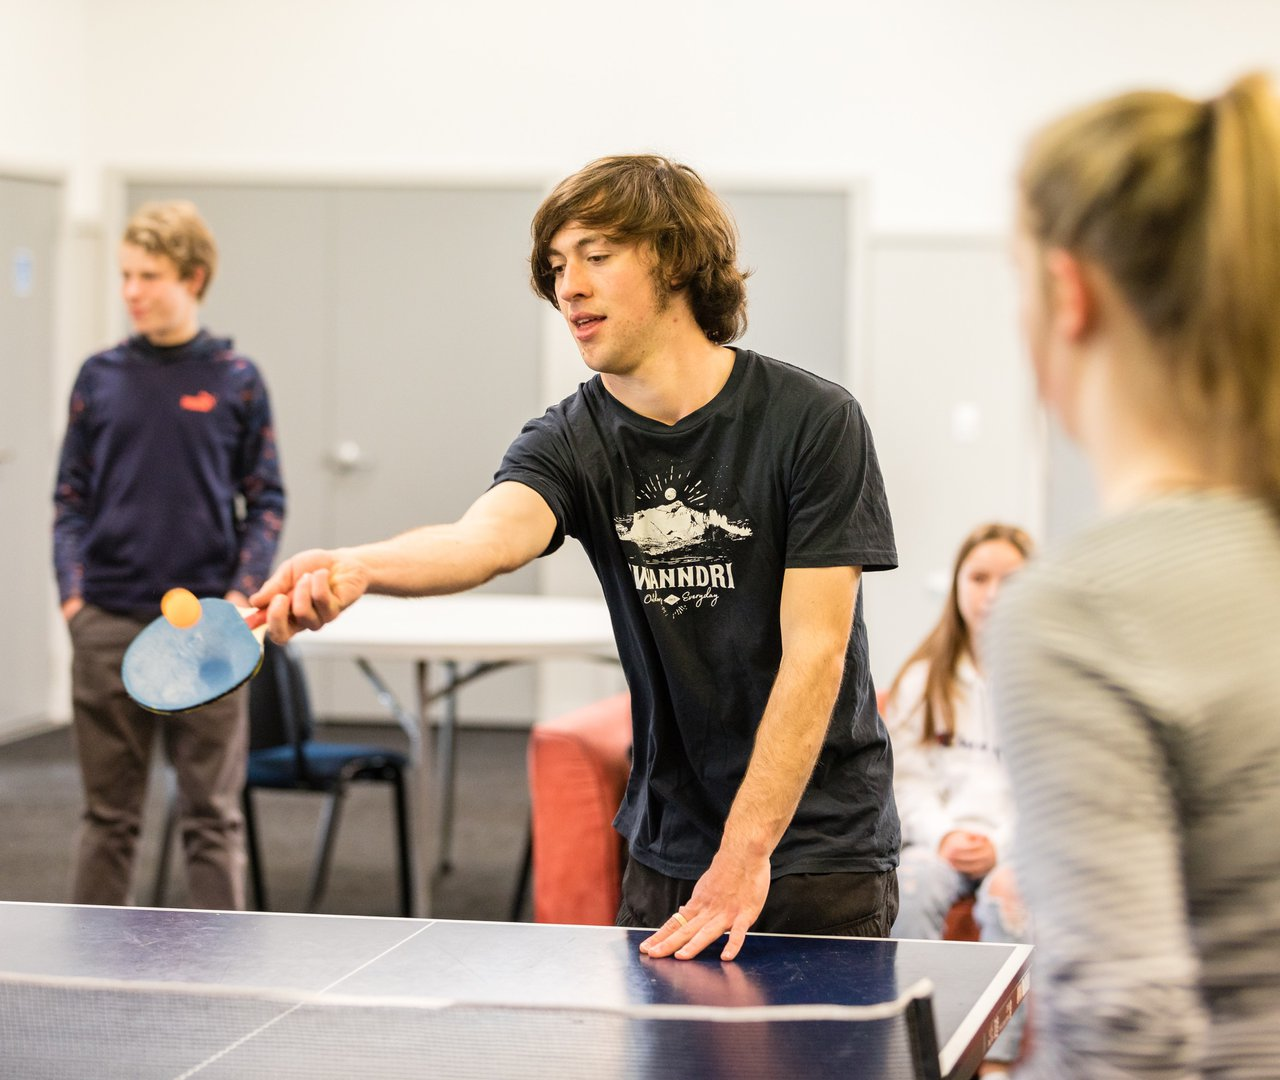 Young people playing table tennis